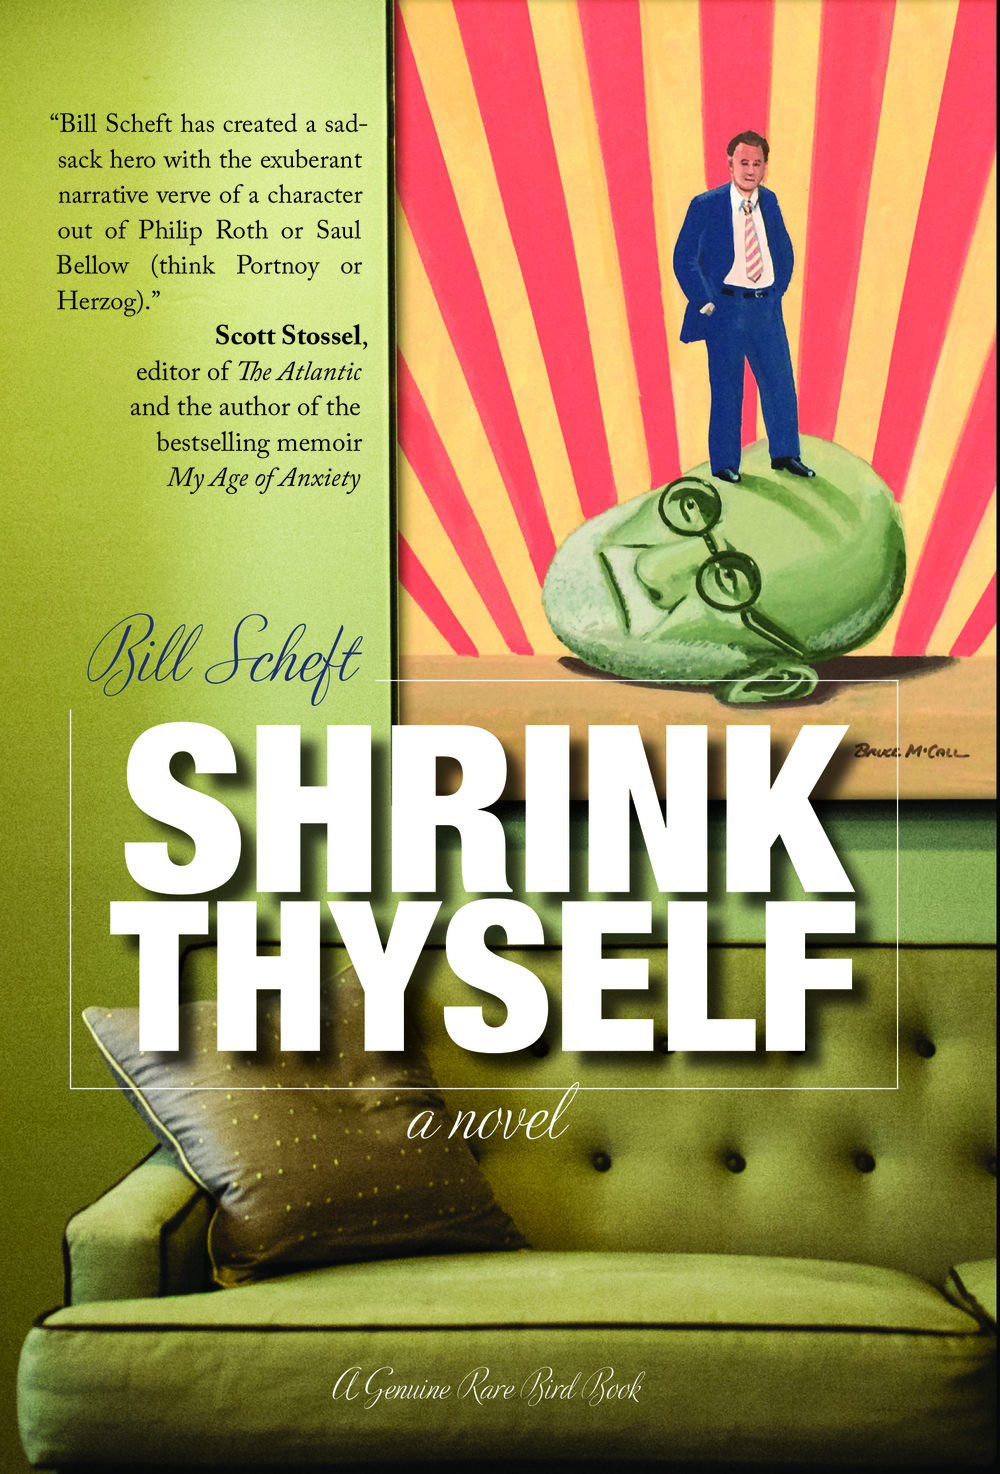 Shrink Thyselfby Bill Scheft In Shrink Thyself, Charlie Traub decides to leave psychotherapy and live the unexamined life. A noble goal, which would be even more noble if his former therapist (now his friend) didn't turn out to be beyond inappropriate and his mother didn't die in a way that would have made Freud transfer to dental school. Despite all unexamined evidence to the contrary, Charlie just might be unable to accept that wherever he goes, there he is.